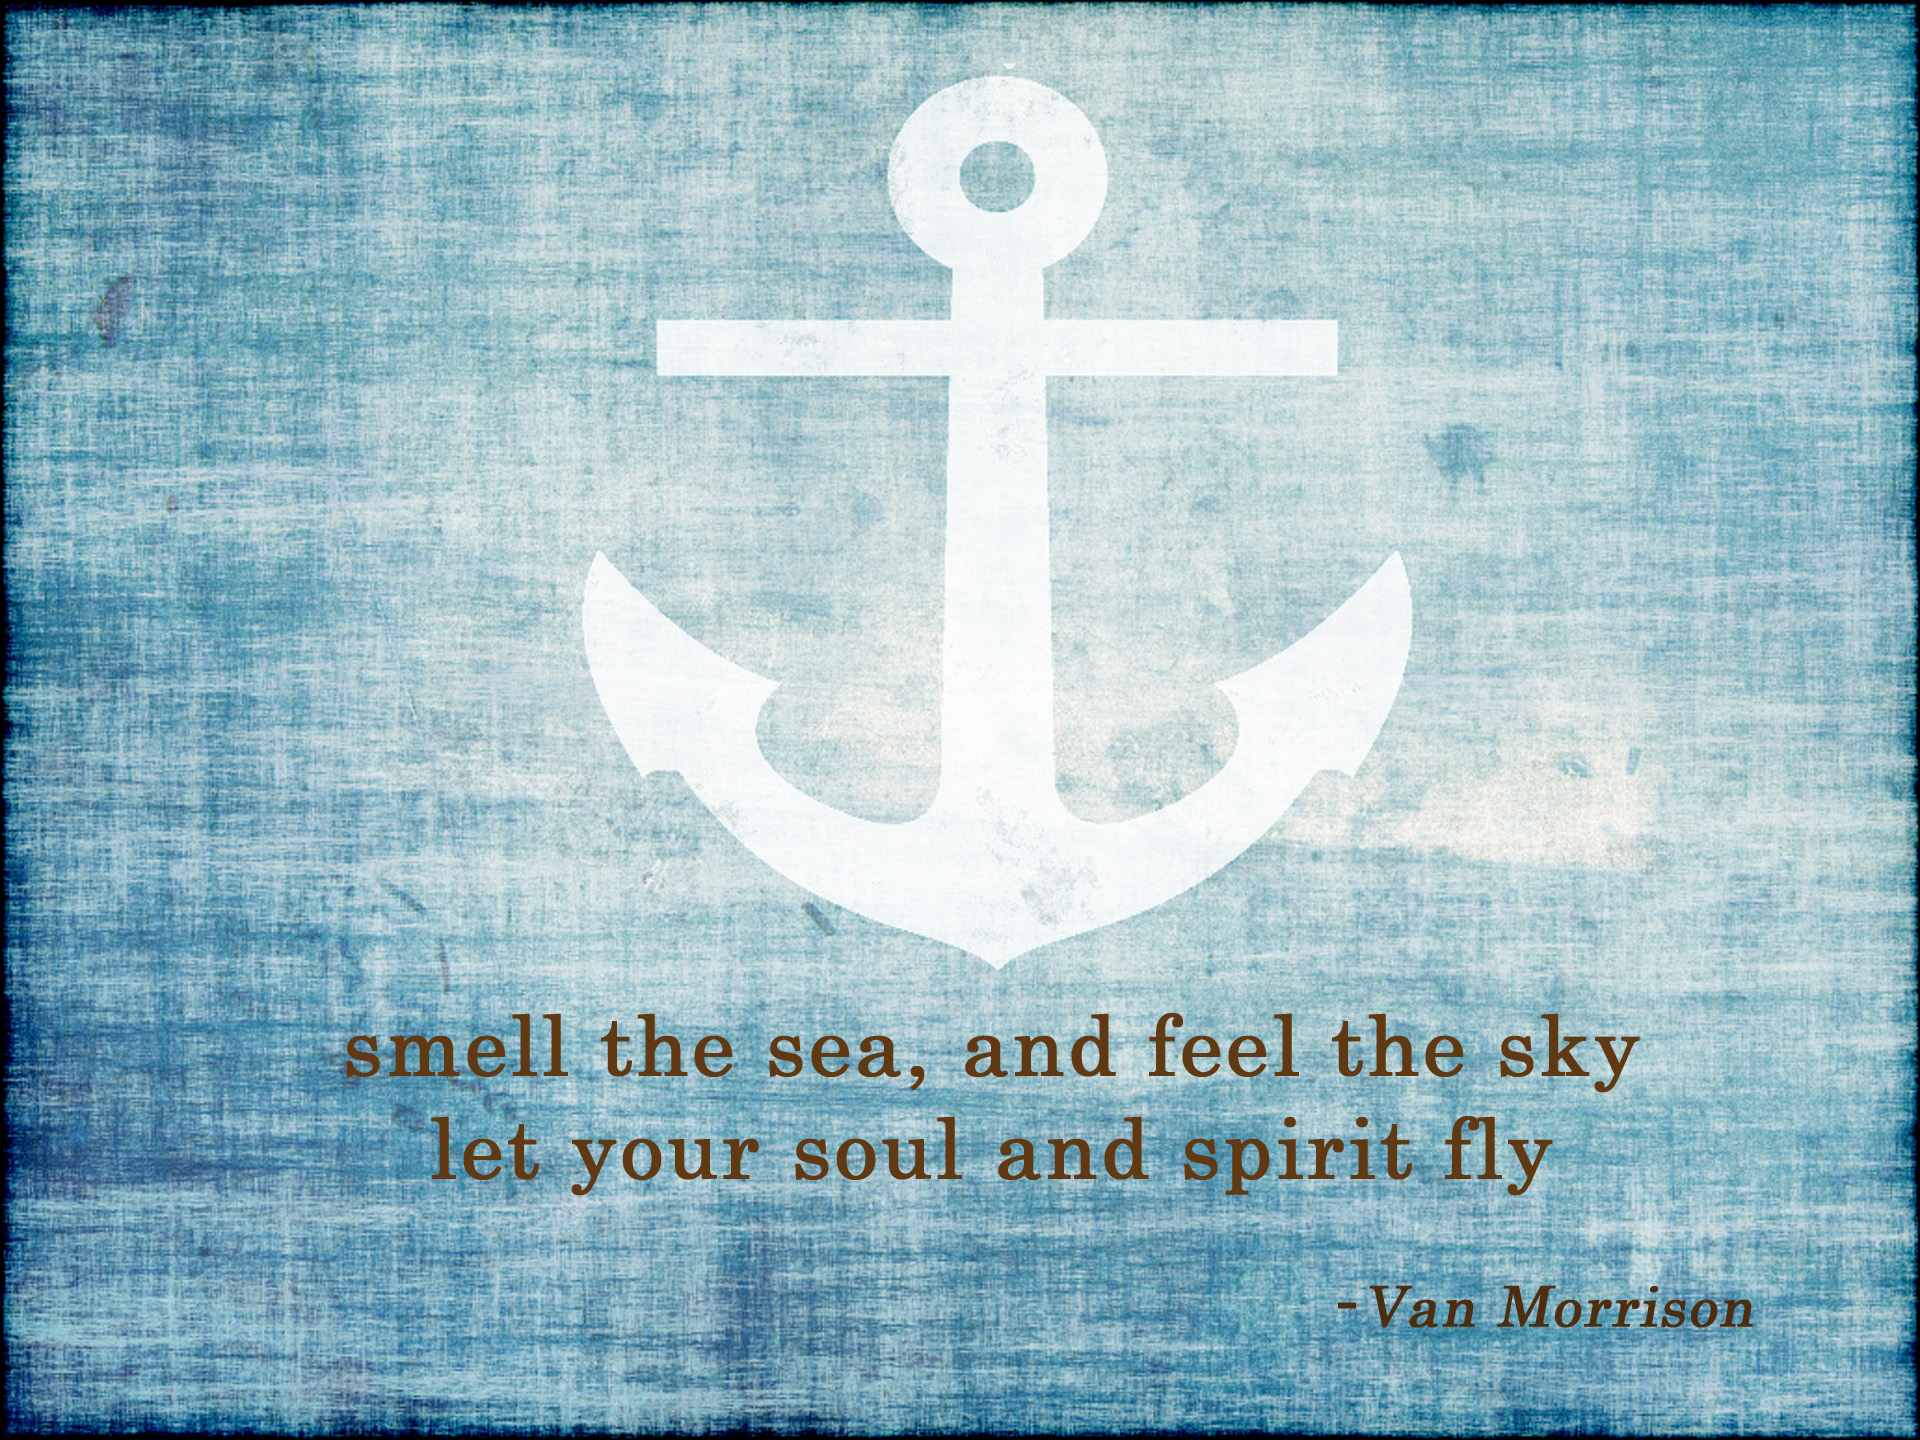 Quotes About Discovery Inspired By The Ocean: Sea Quotes Sailors Quotes. QuotesGram